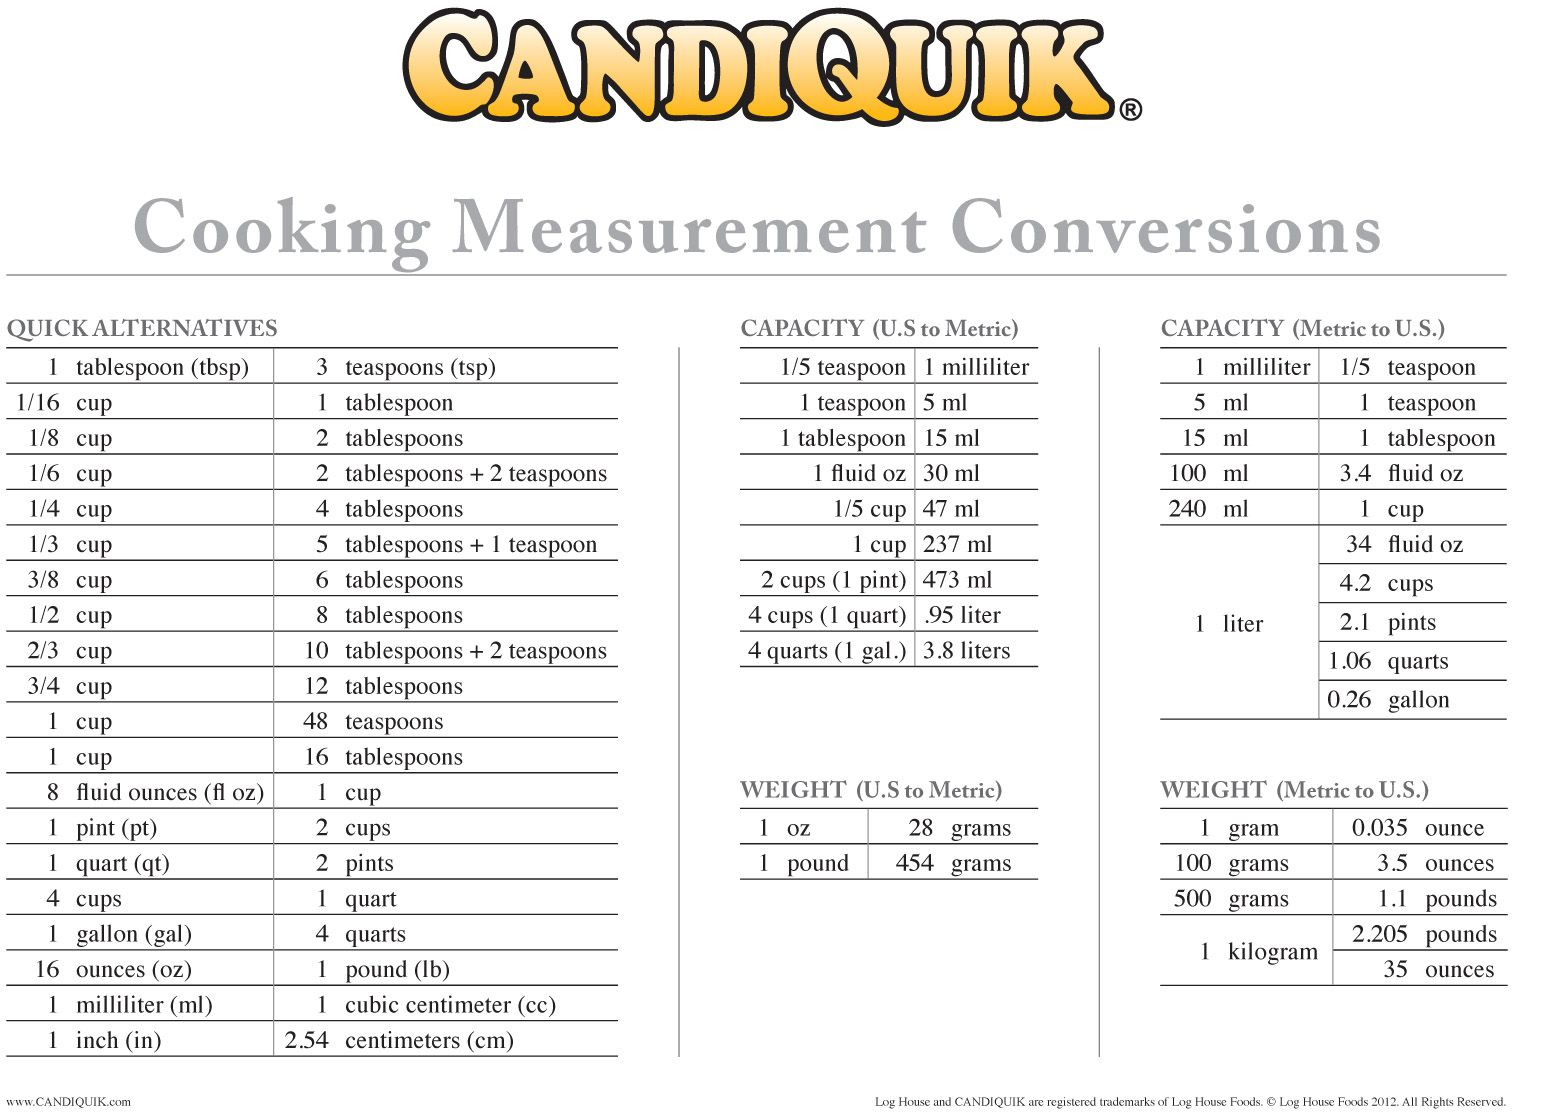 Free printables measurement conversion chart cooking cooking measurement conversion chart free printables cake pop ideas etc from candiquik nvjuhfo Gallery